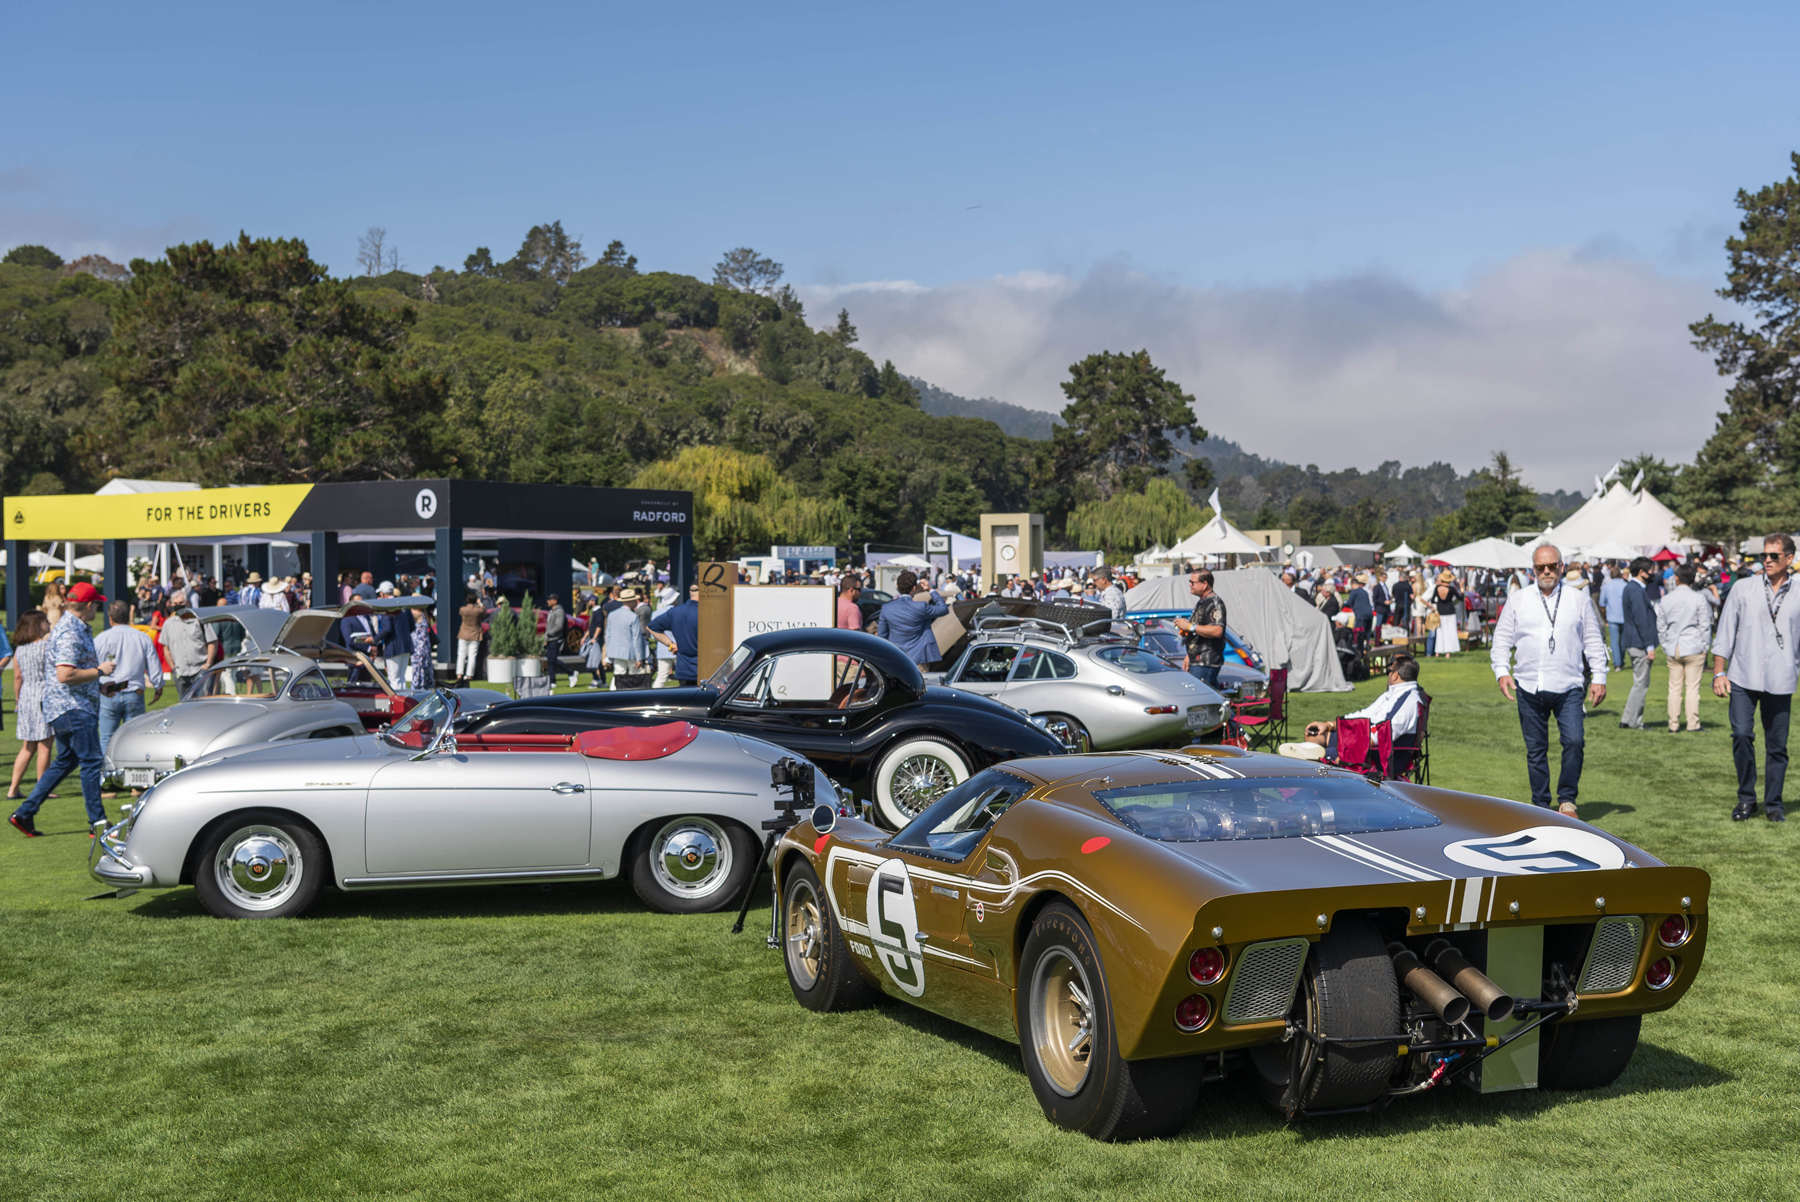 A group of vehicles at the Quail event